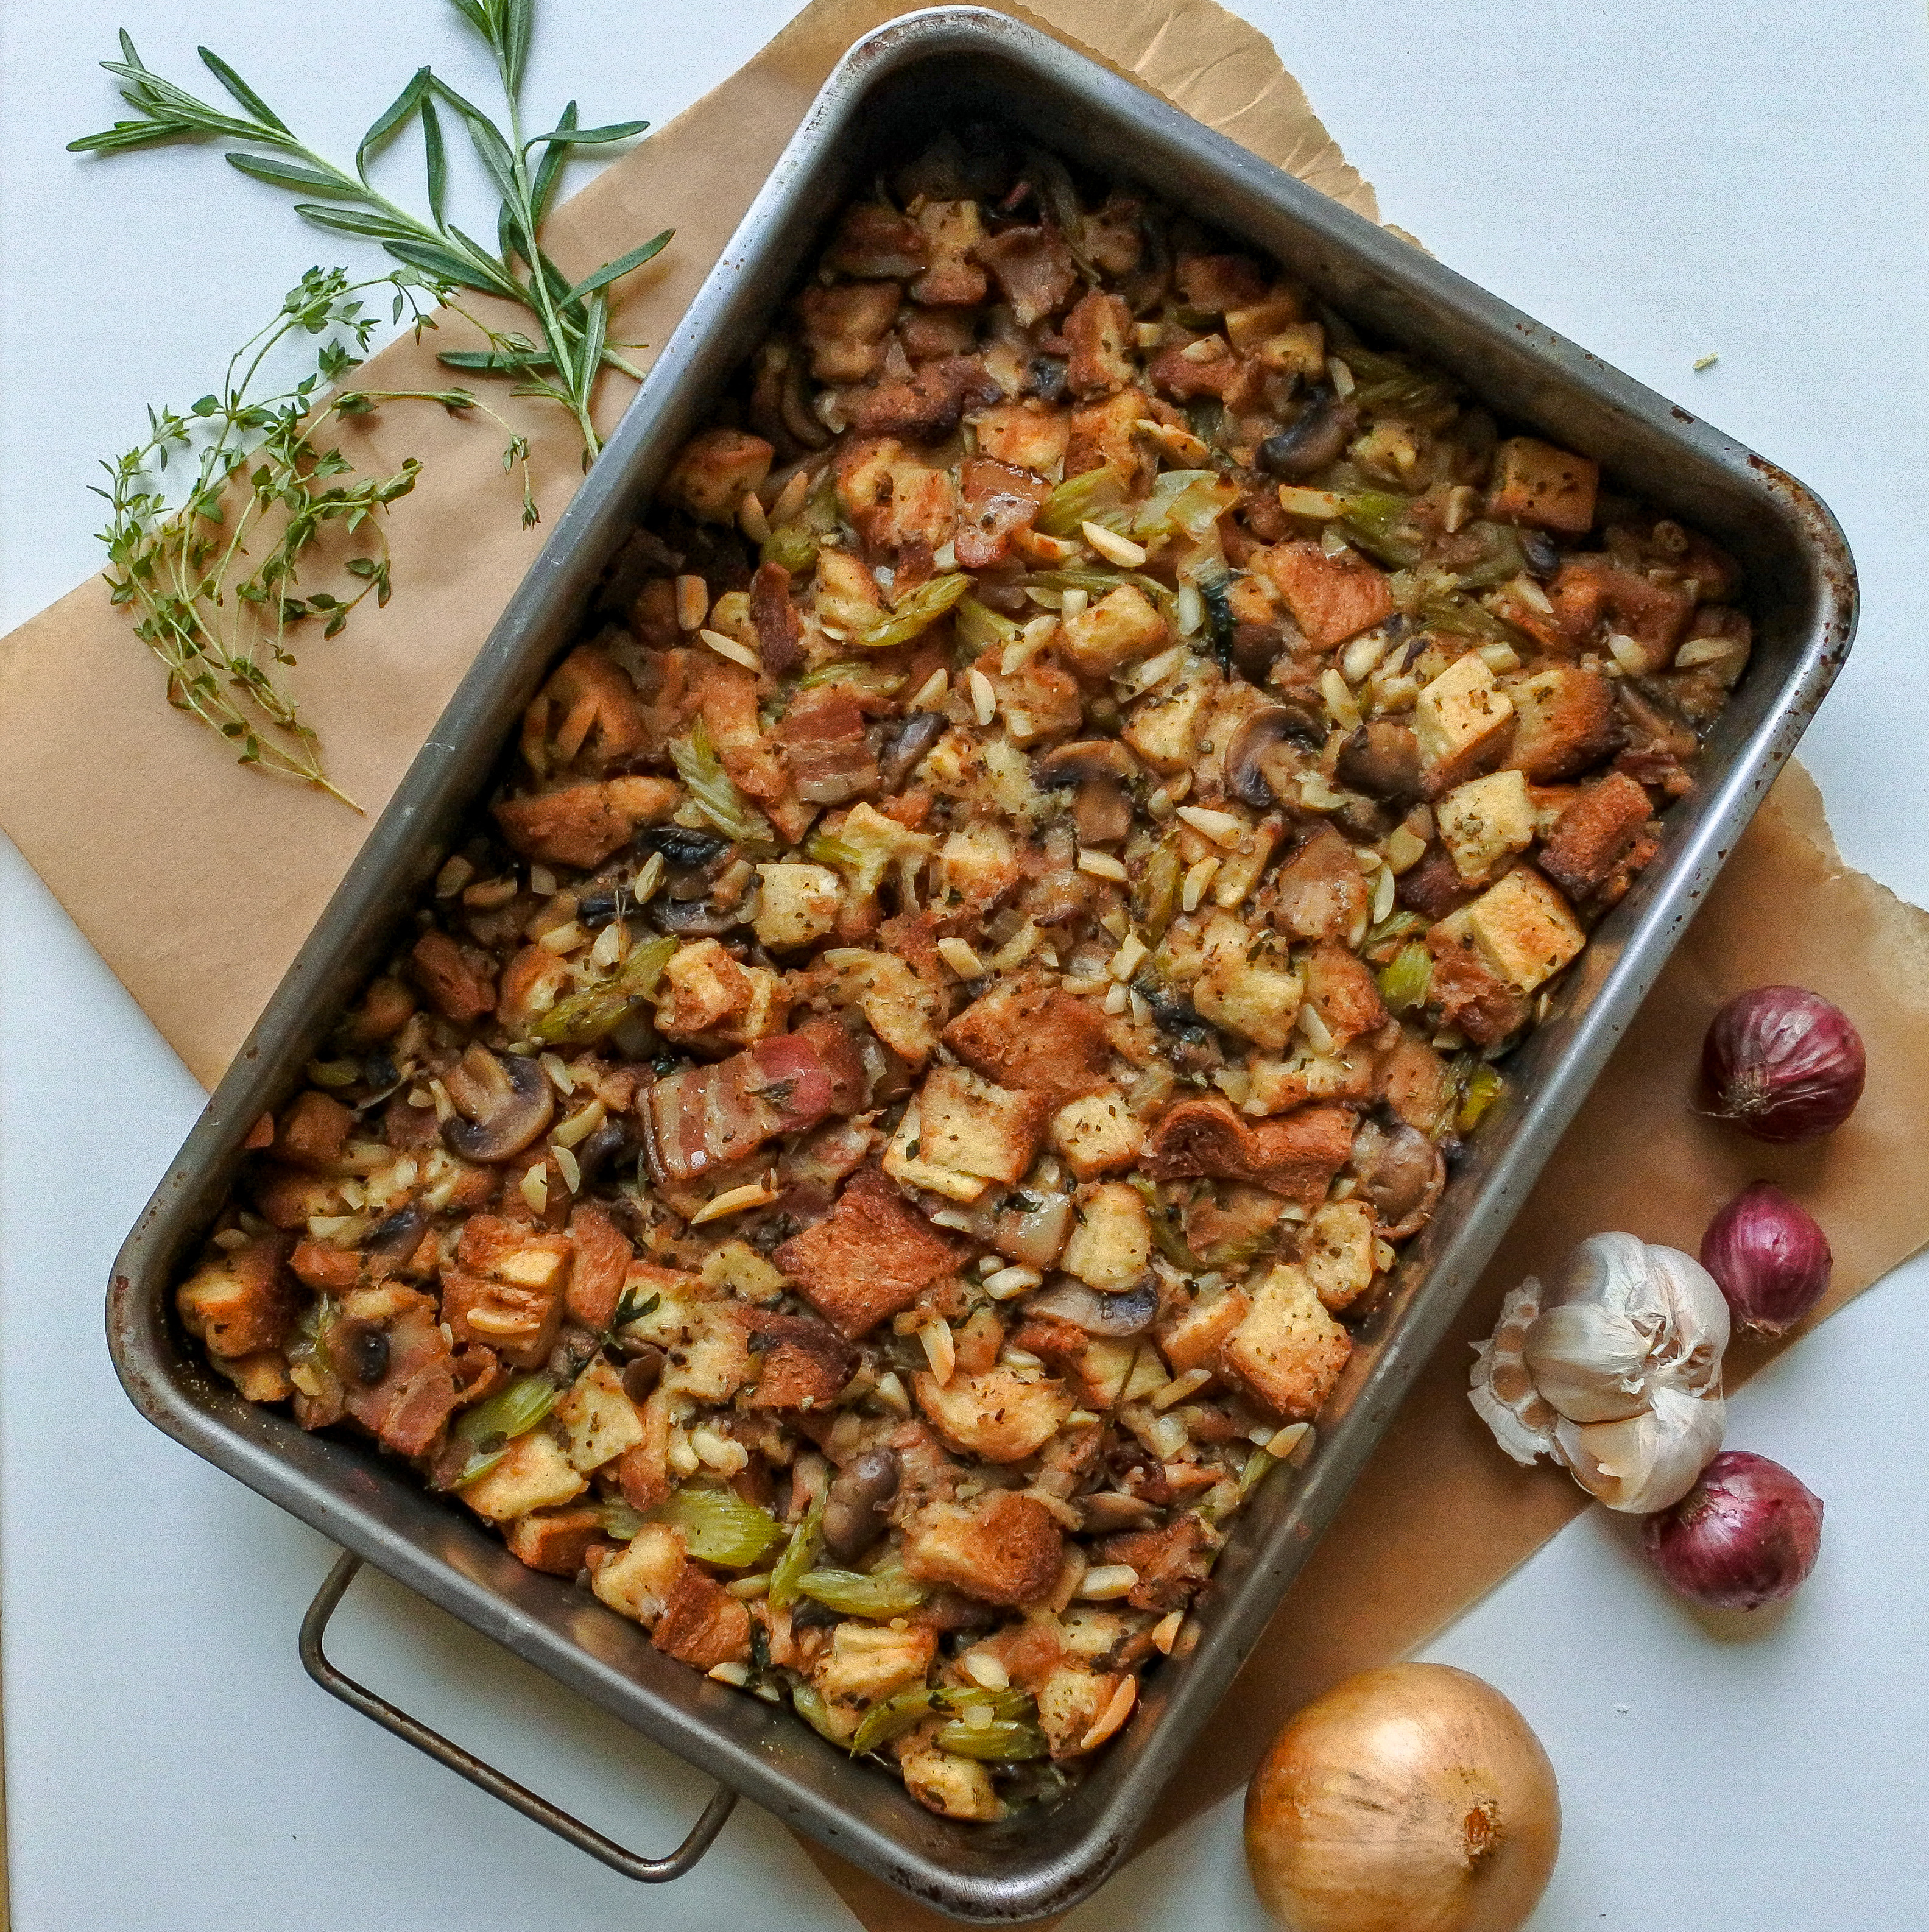 Bacon, Almond and Herb Stuffing